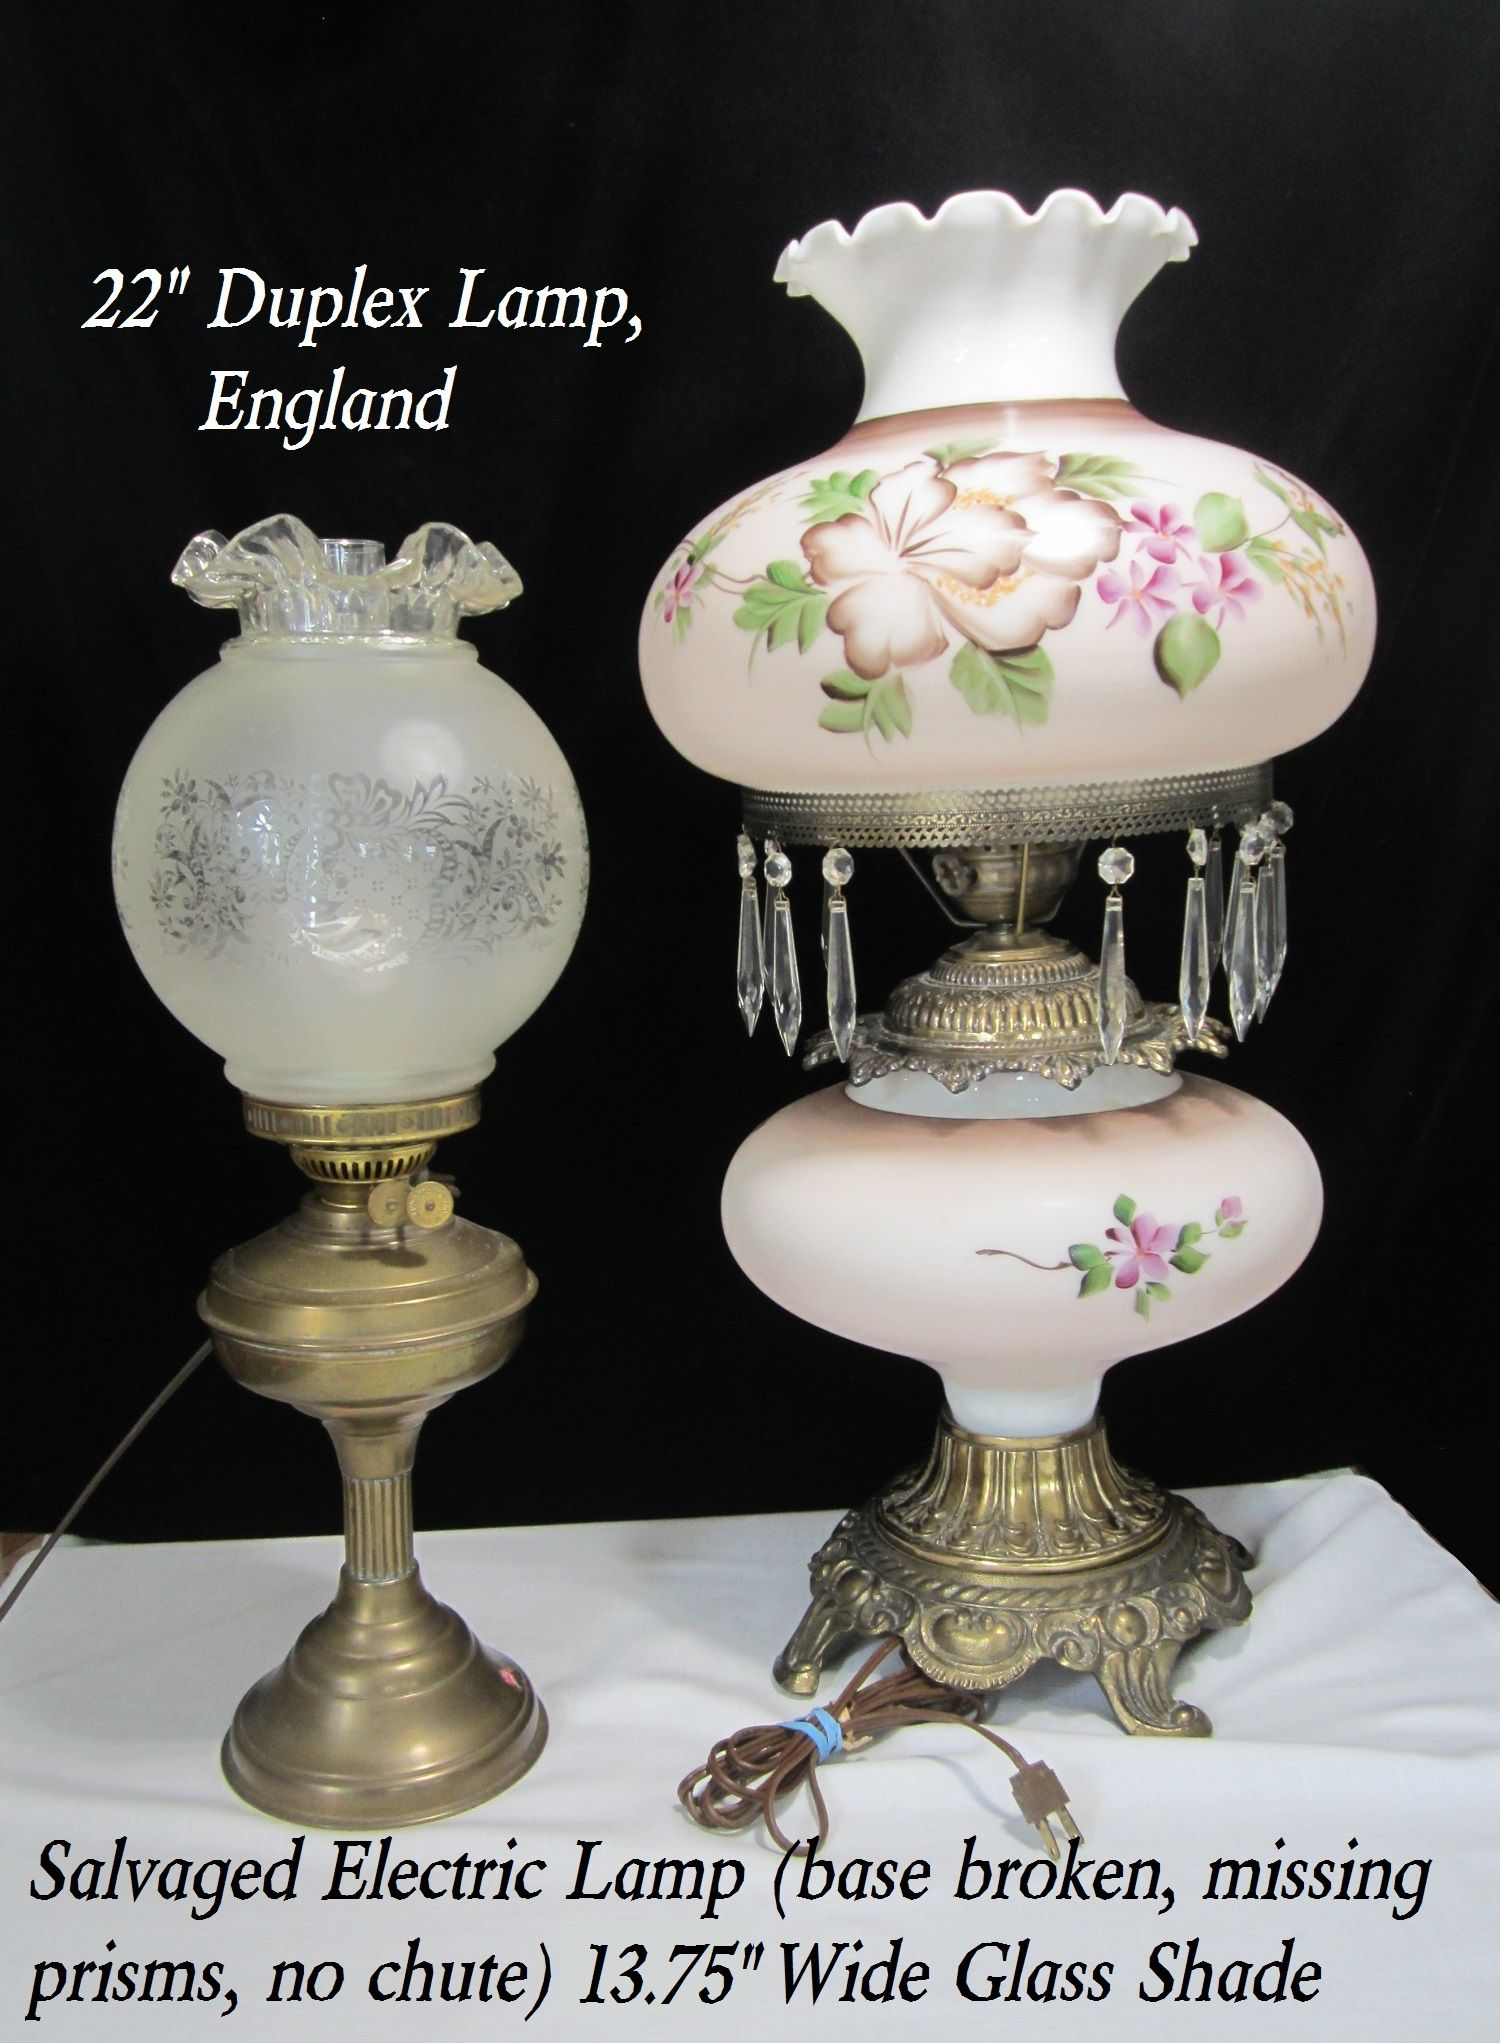 14 Glass Hurricane Lamp Shade Replacement Light Globe Vintage Kerosene Oil Parlor Lighting Hand Painted Milk Glass Mauve Purple 10 Fitter Glass Hurricane Lamps Hurricane Lamp Shade Replacement Light Globes